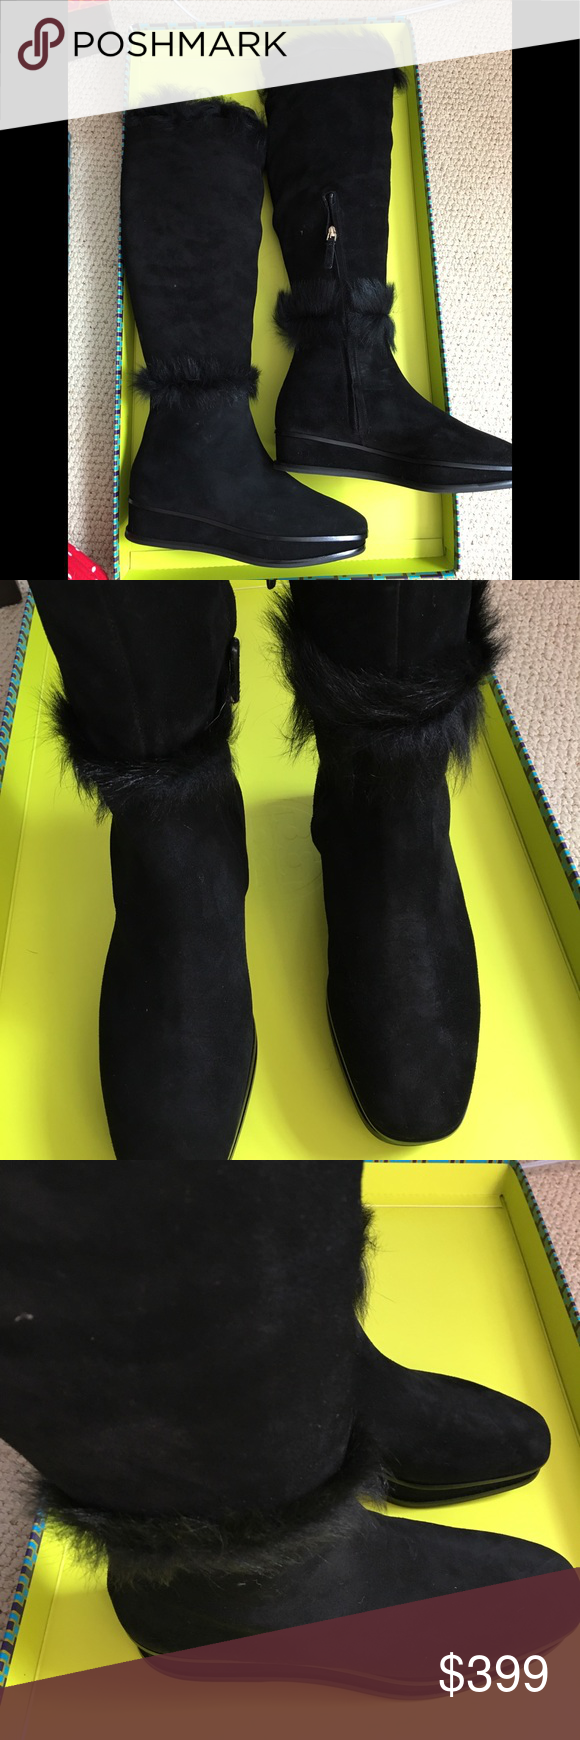 9d1b3792b Tory Burch boots Tory Burch marcel fur boot in black suede . New in box  with bag. Size 7 Tory Burch Shoes Heeled Boots